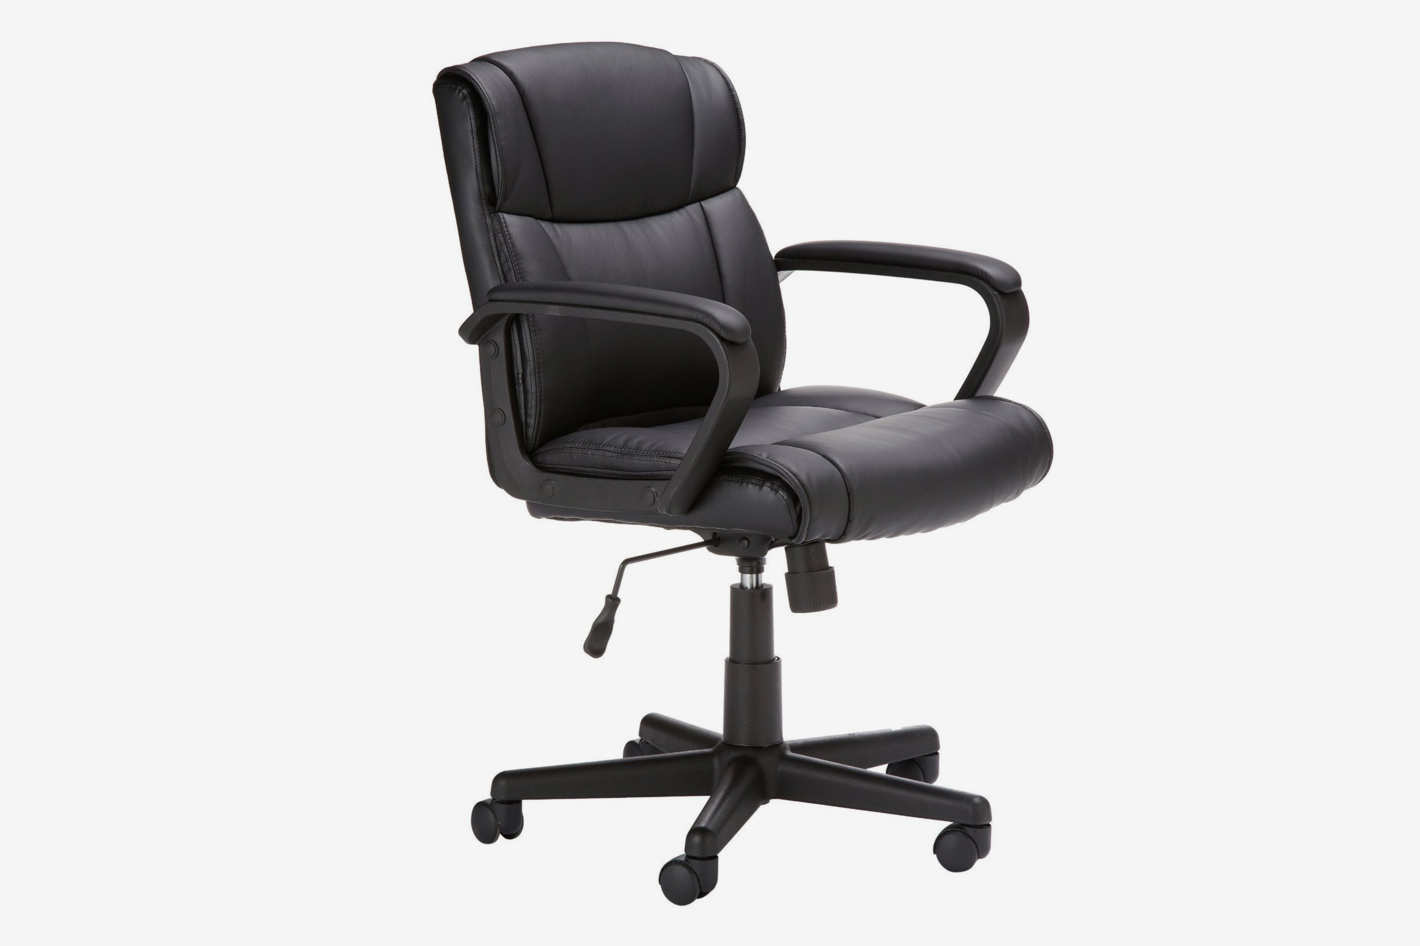 Comfortable Office Chairs For Small Spaces: Office Chairs Dubai